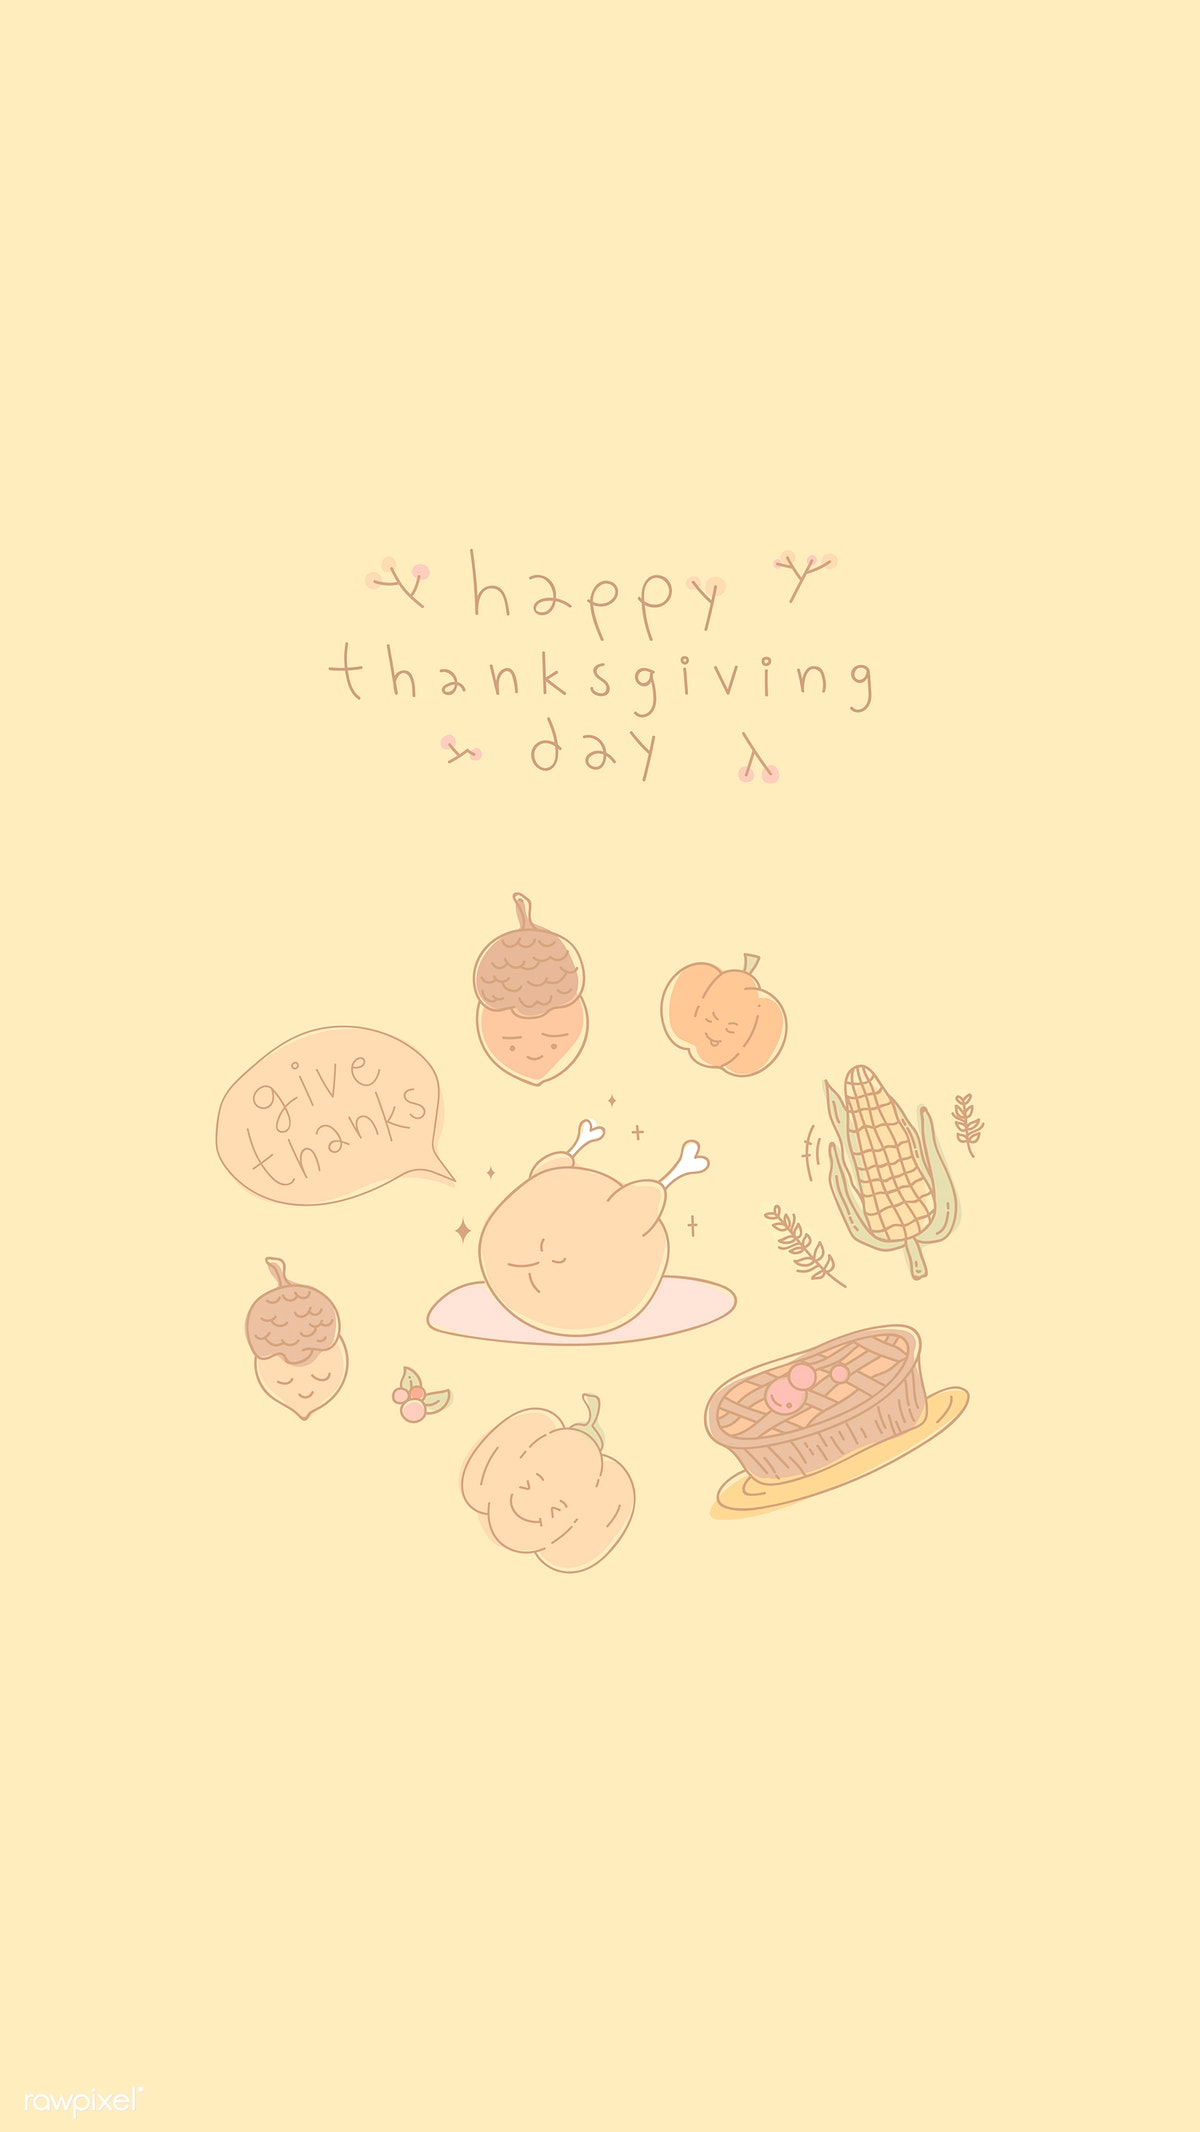 Cute Thanksgiving Wallpapers Aesthetic Christmas Aesthetic Wallpaper Posted By Ethan Mercado